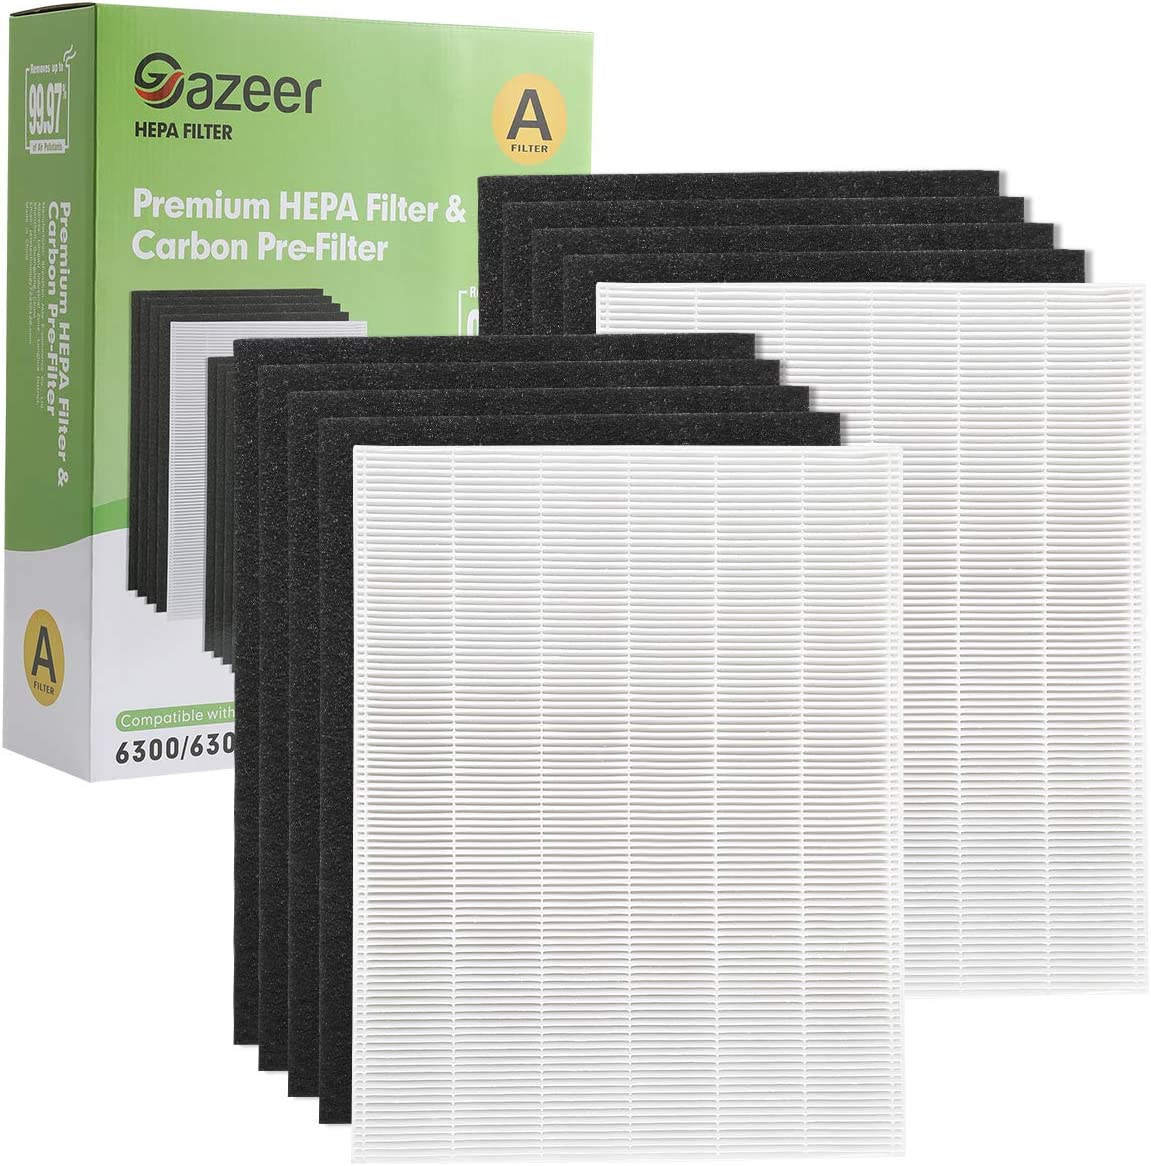 Gifts Gazeer 2 True HEPA Filter Replacement 8 A supreme and Carbon Pre